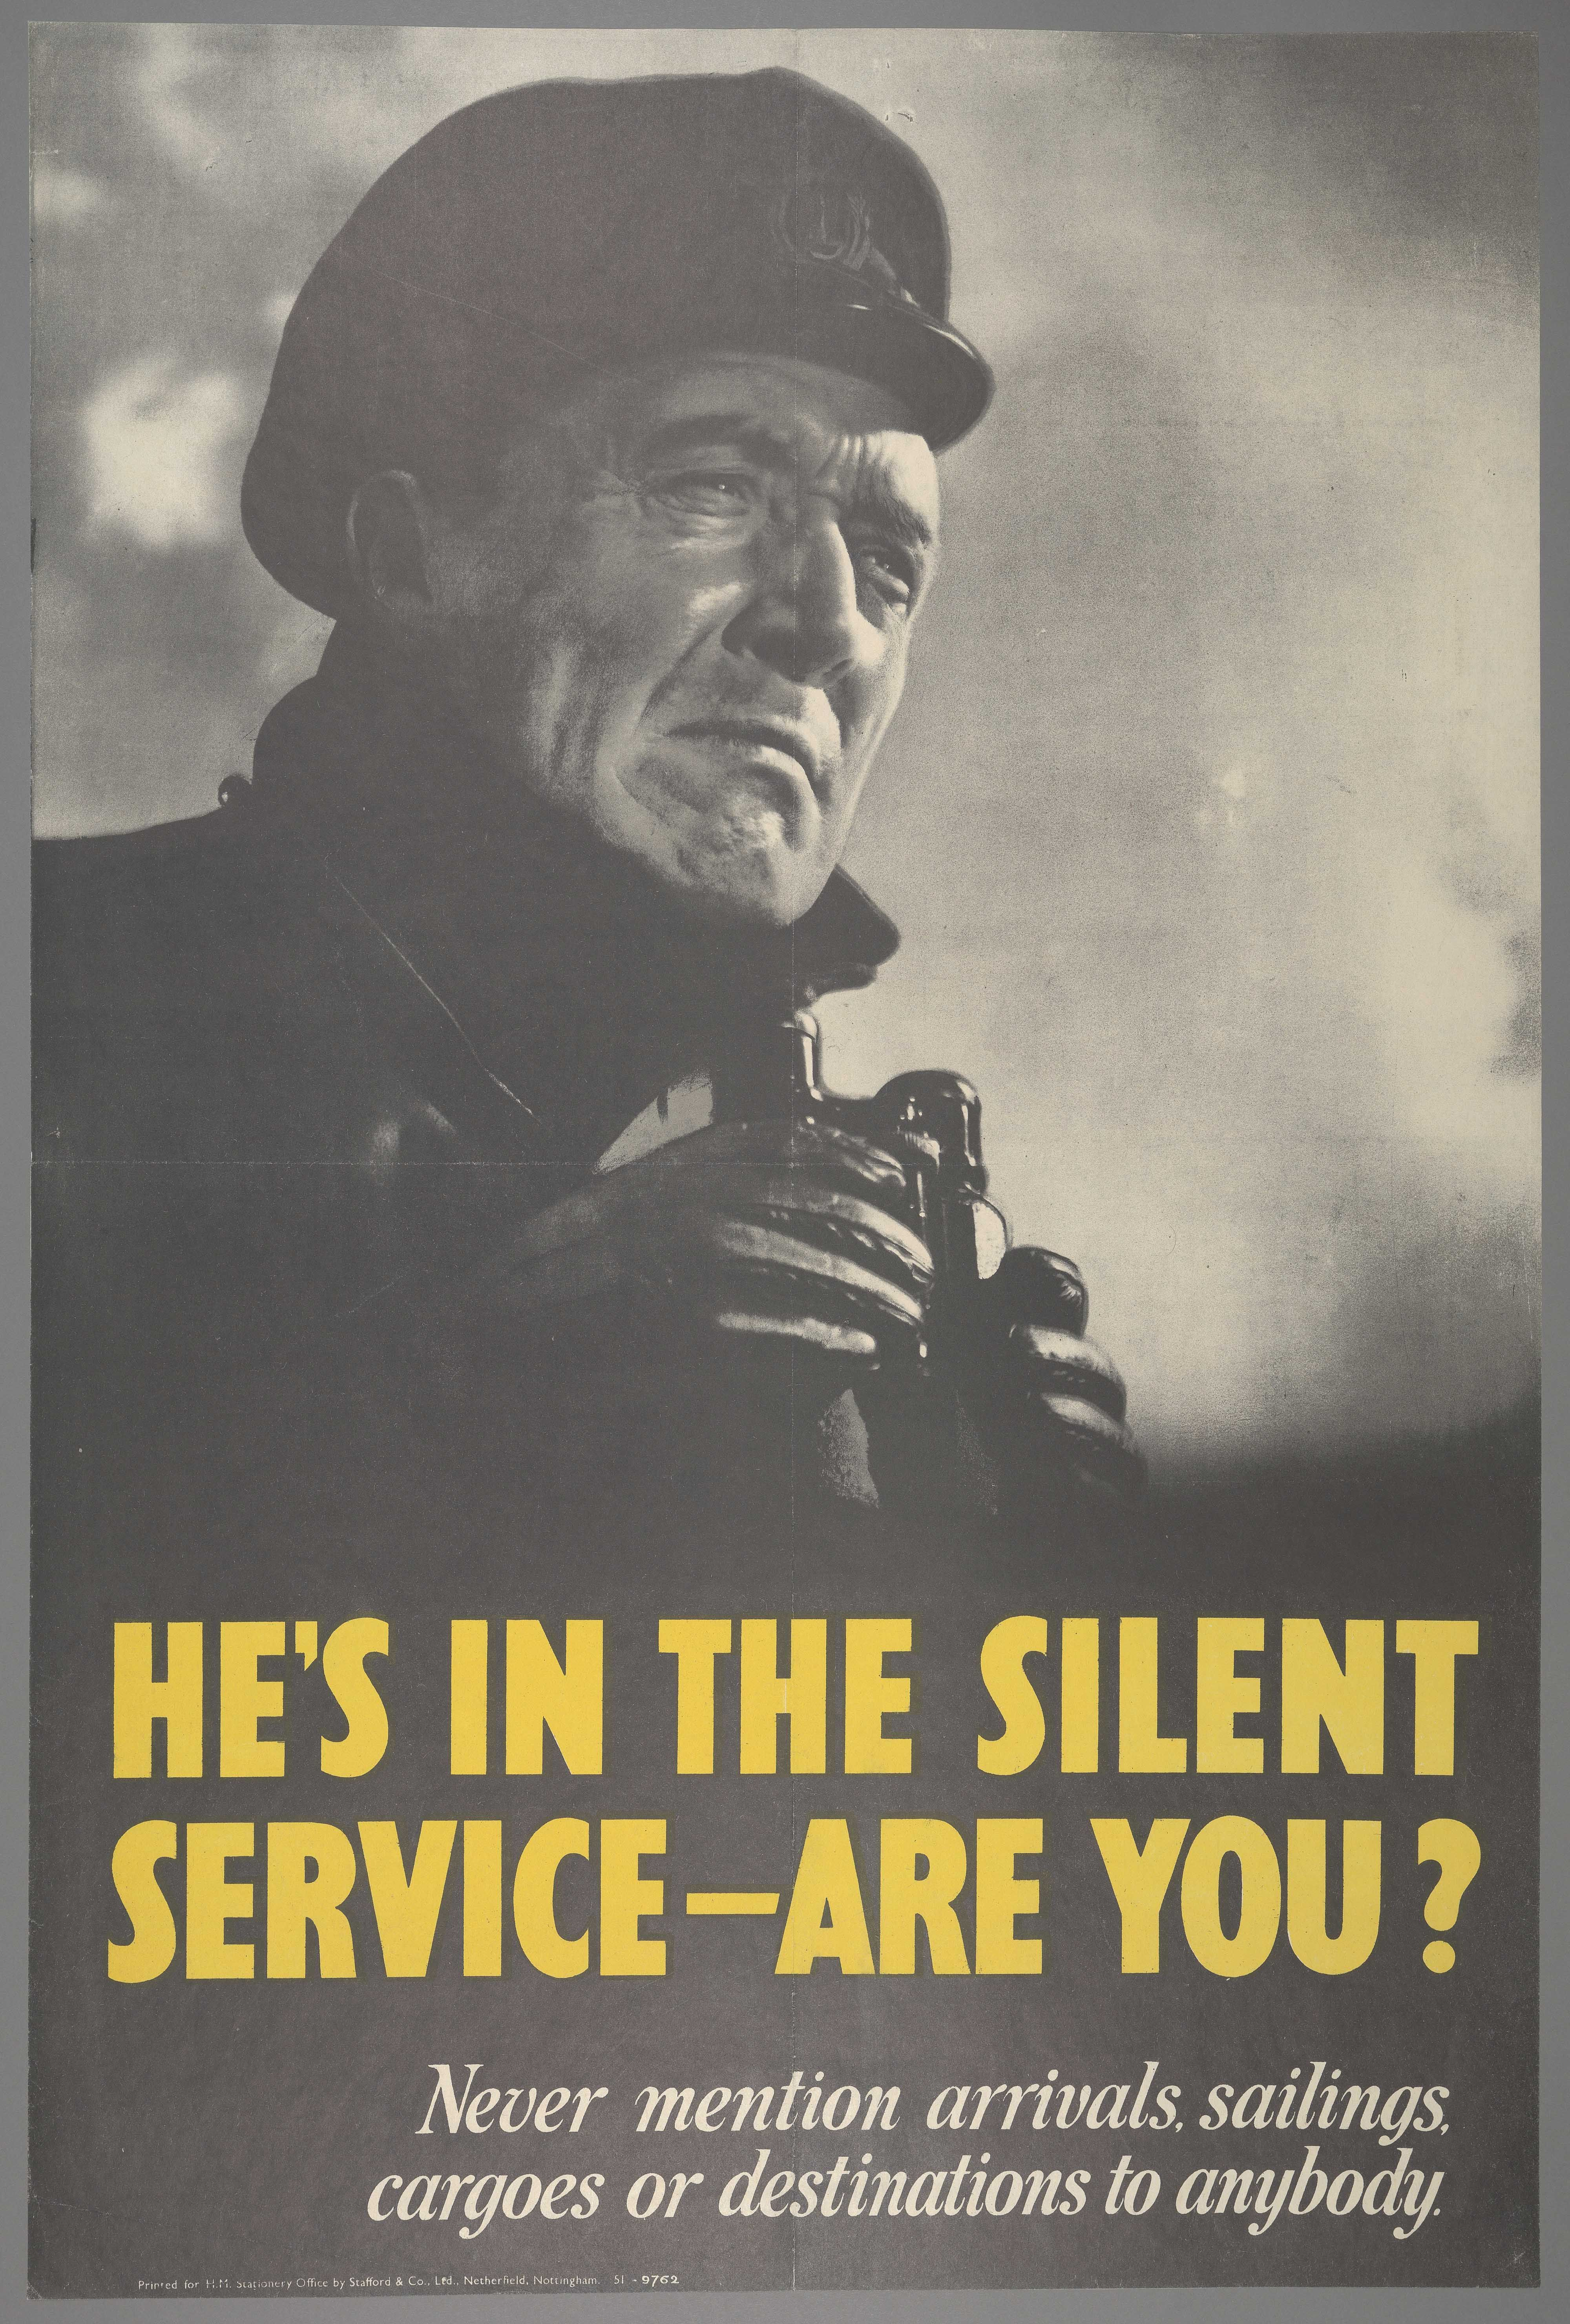 WW2, poster, He's in the silent service, are you? 1939-1945